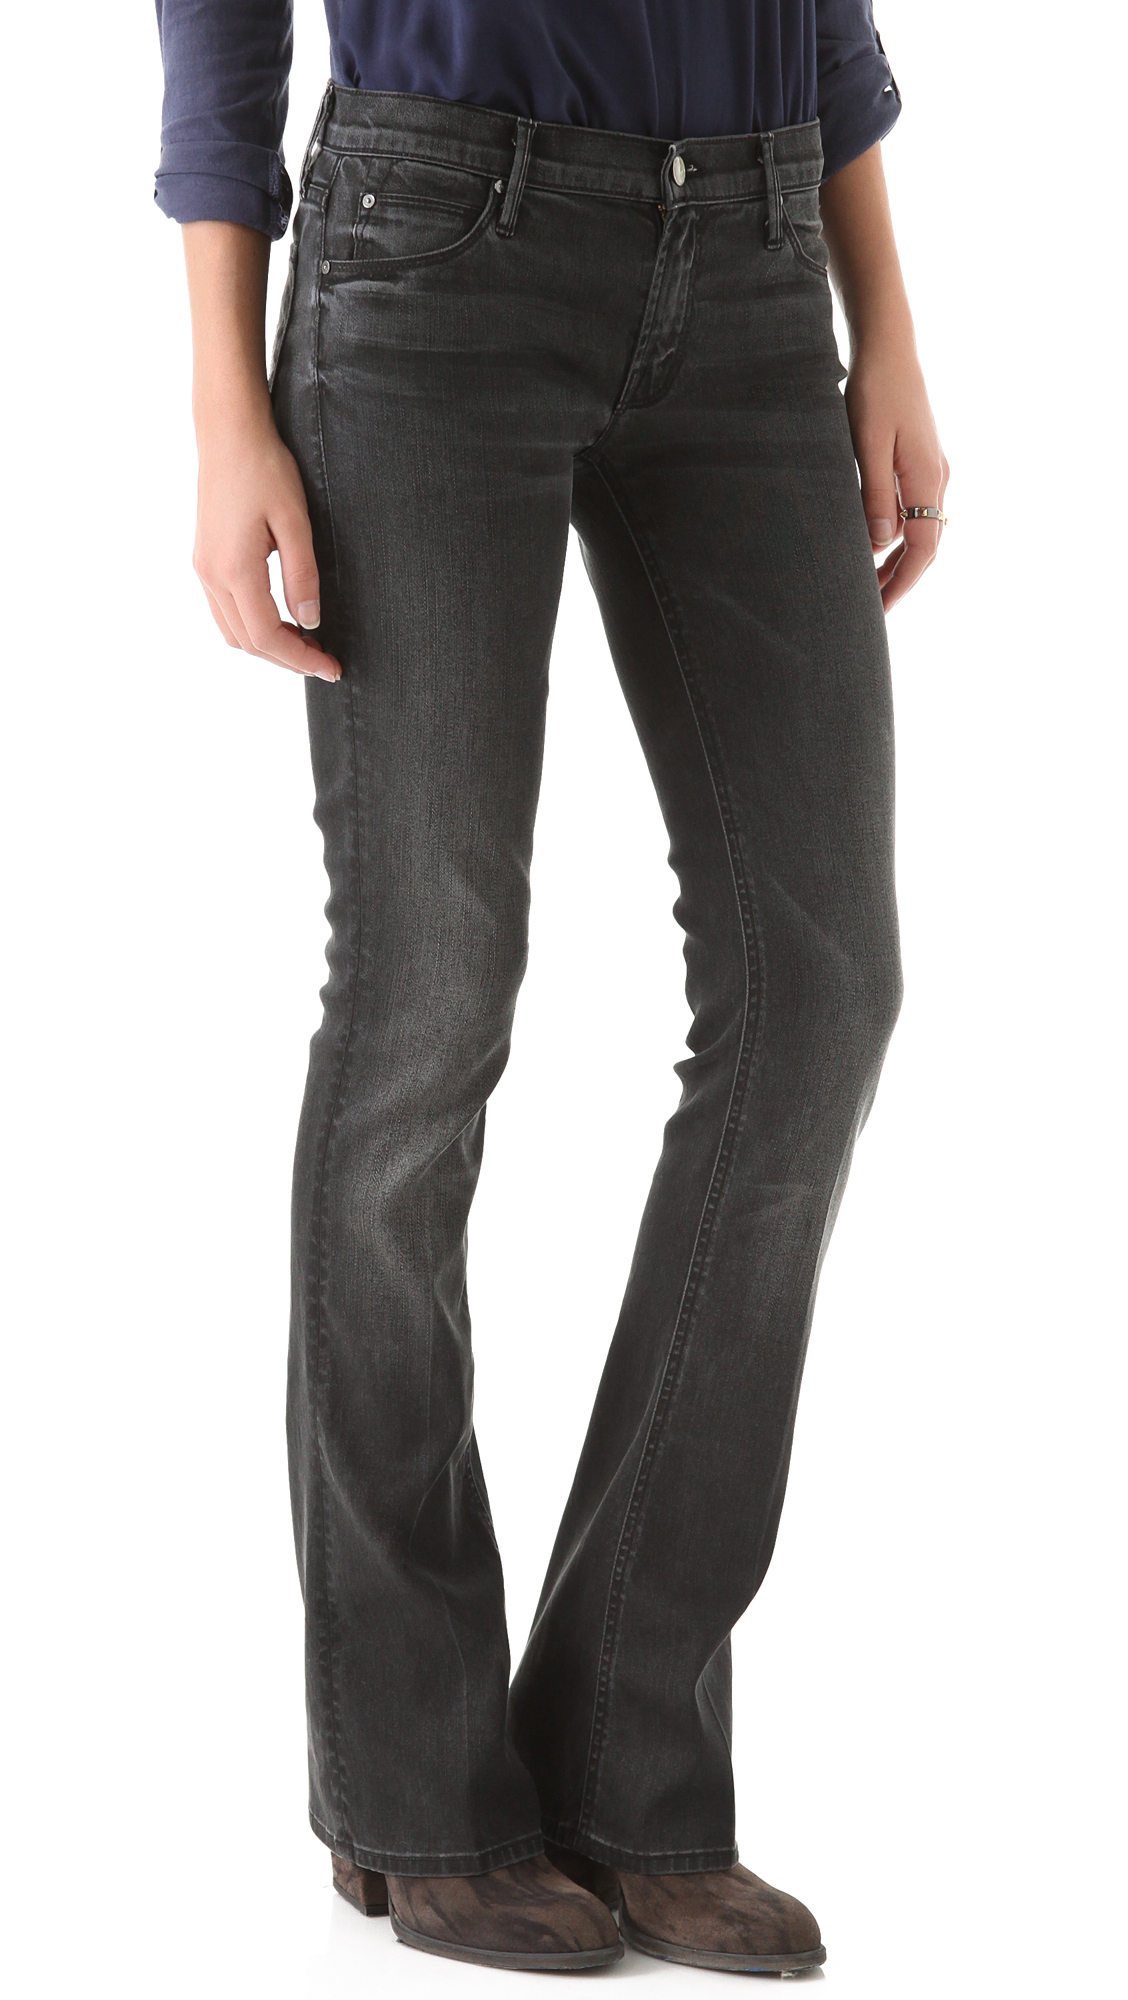 Mother Runaway Skinny Flare Jeans - Grey in Gray | Lyst